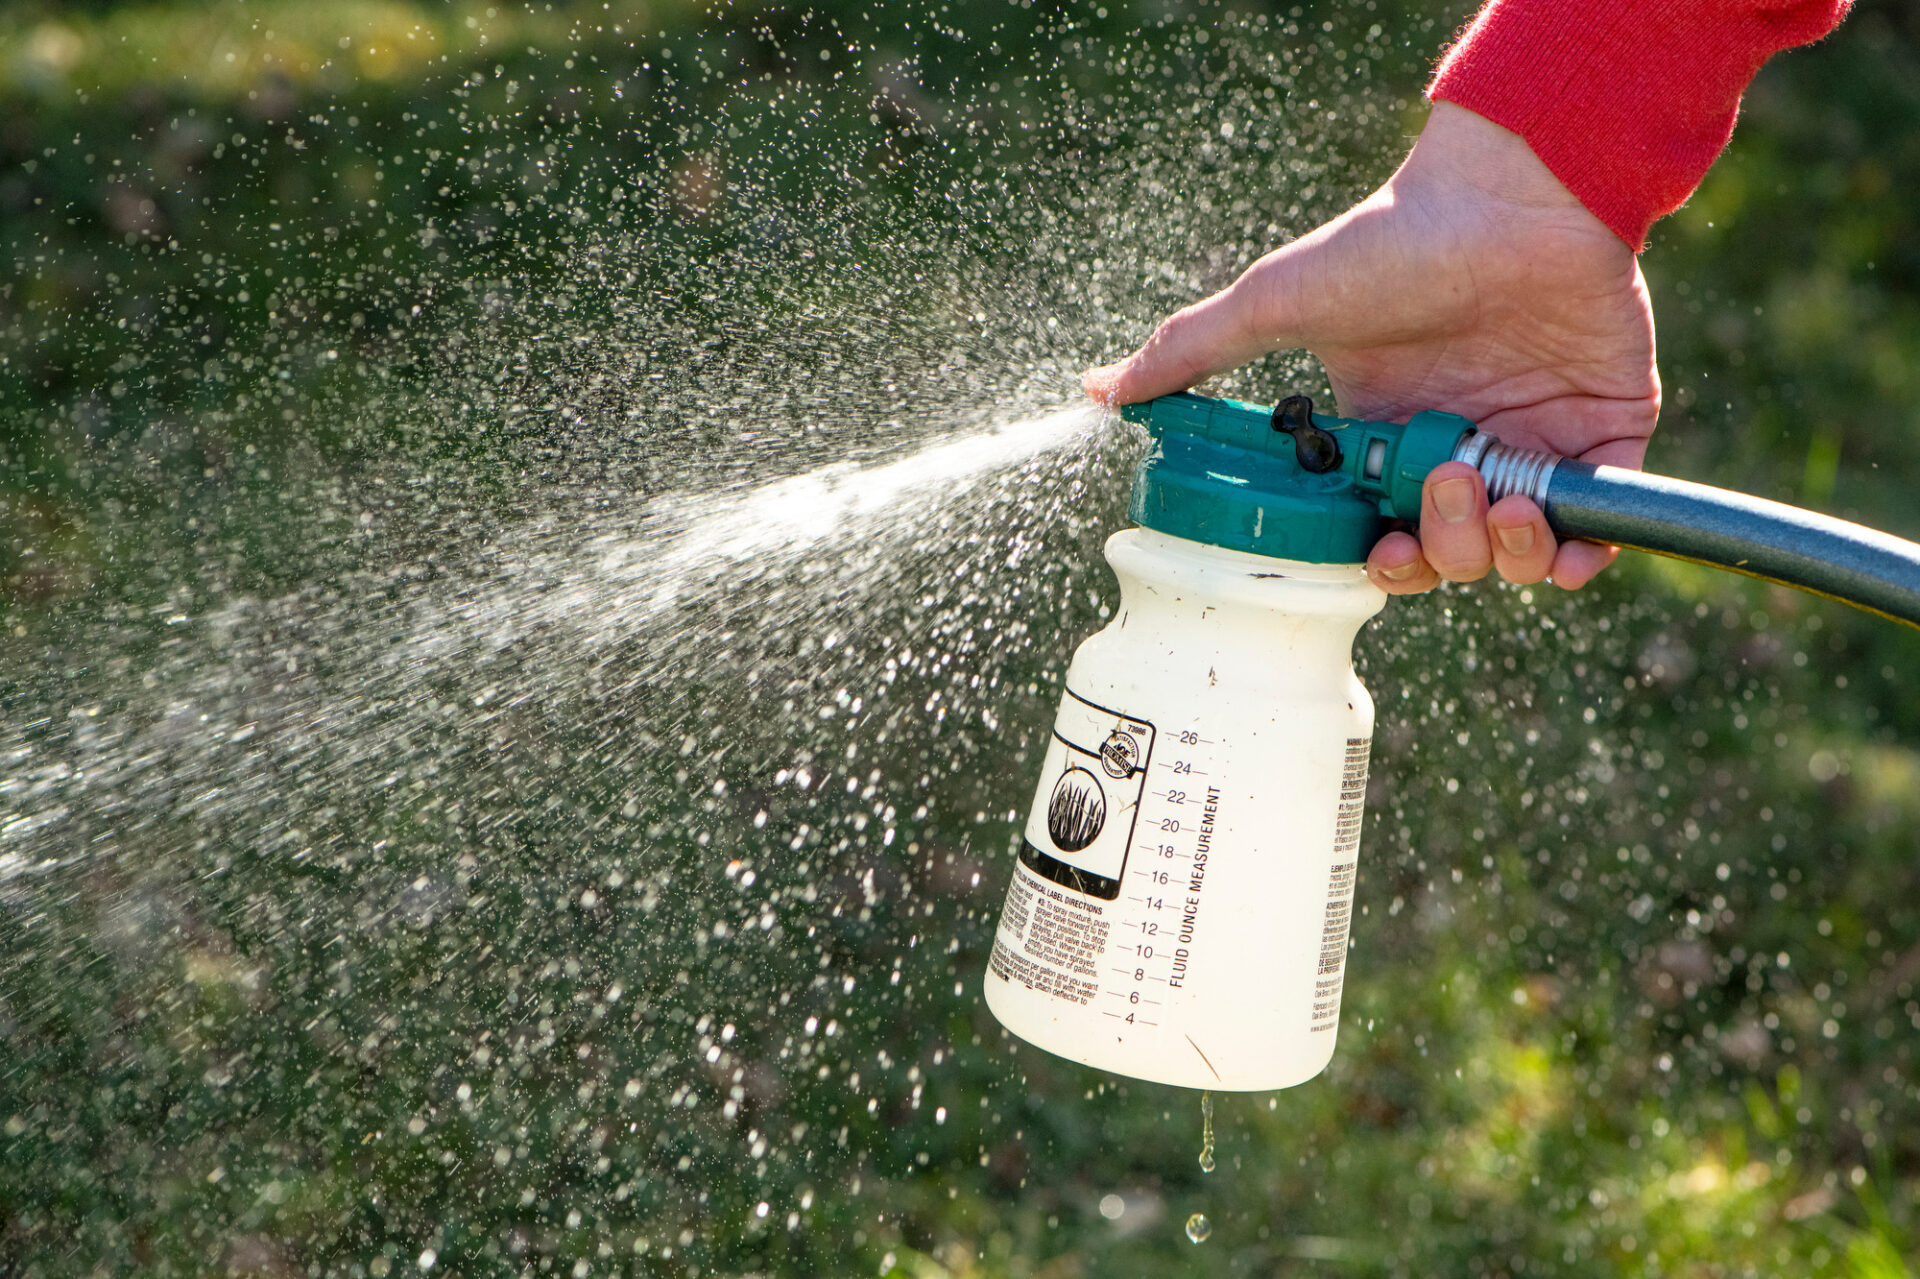 Photo: Pesticides are sprayed from a bottle.